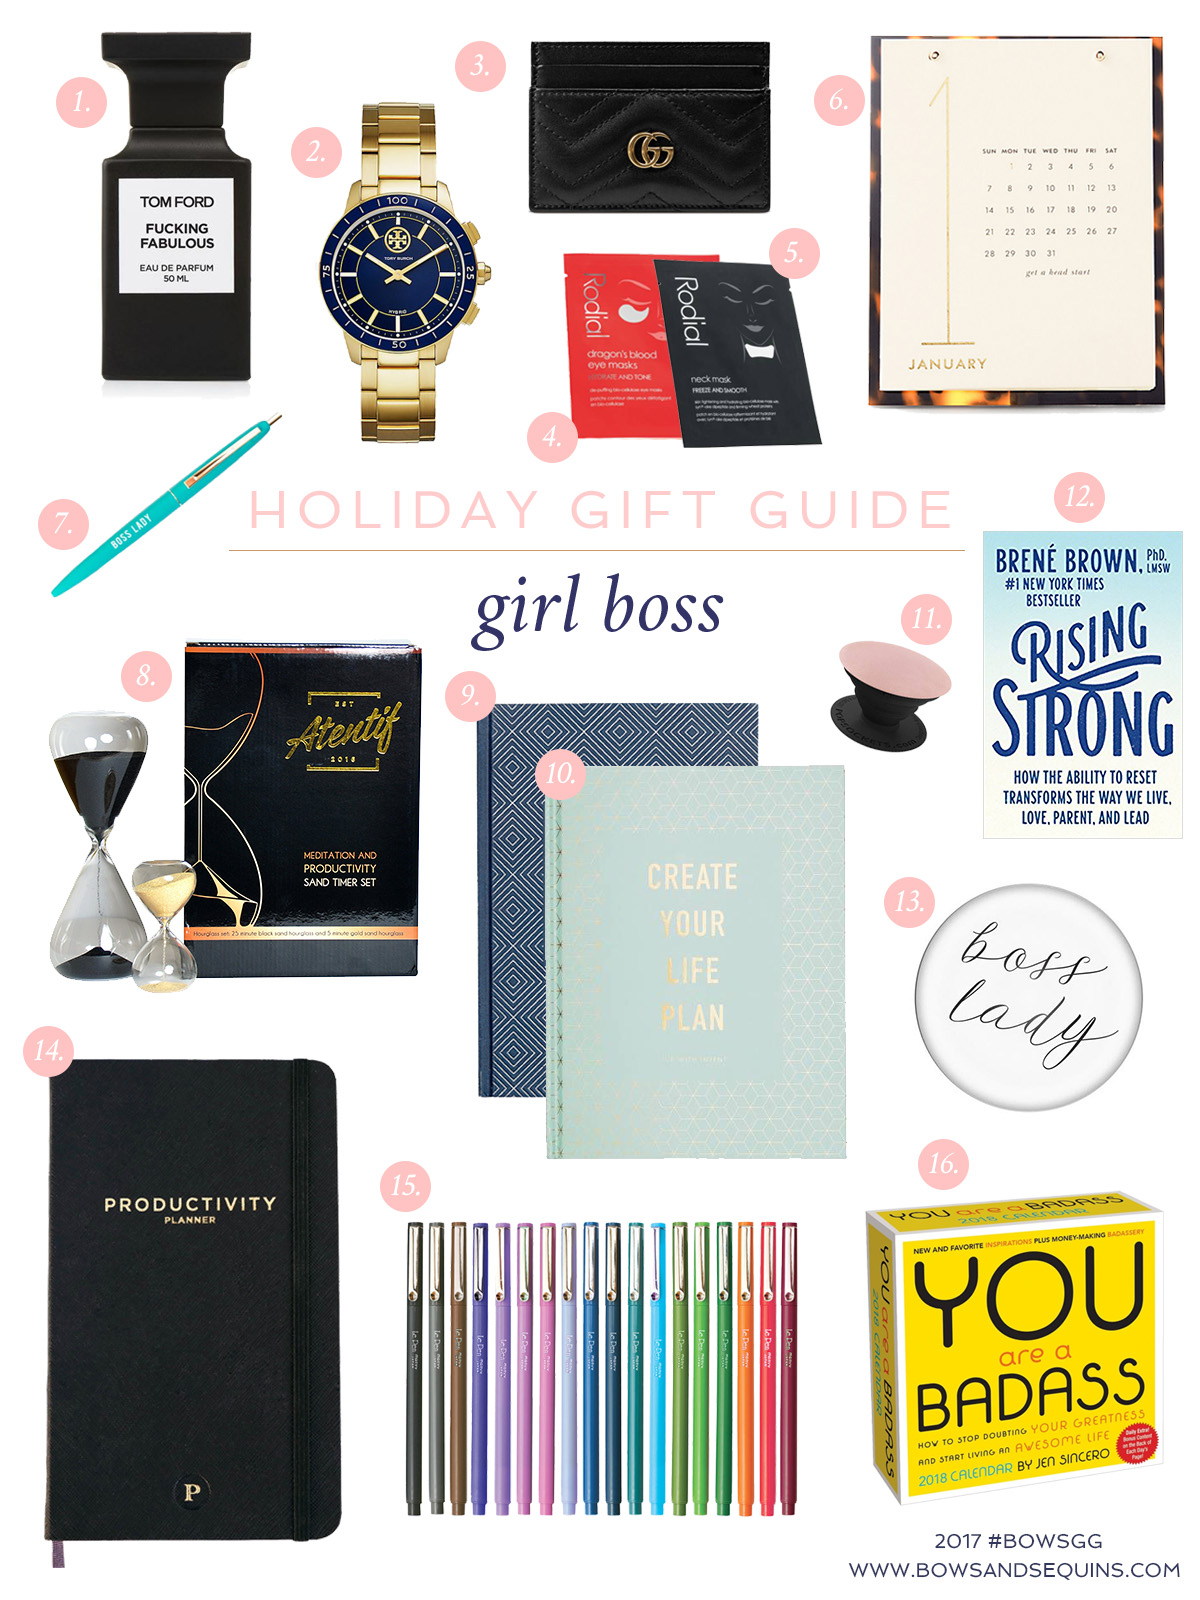 Bows & Sequins shares the best gifts to give the girl boss on your list this holiday season.